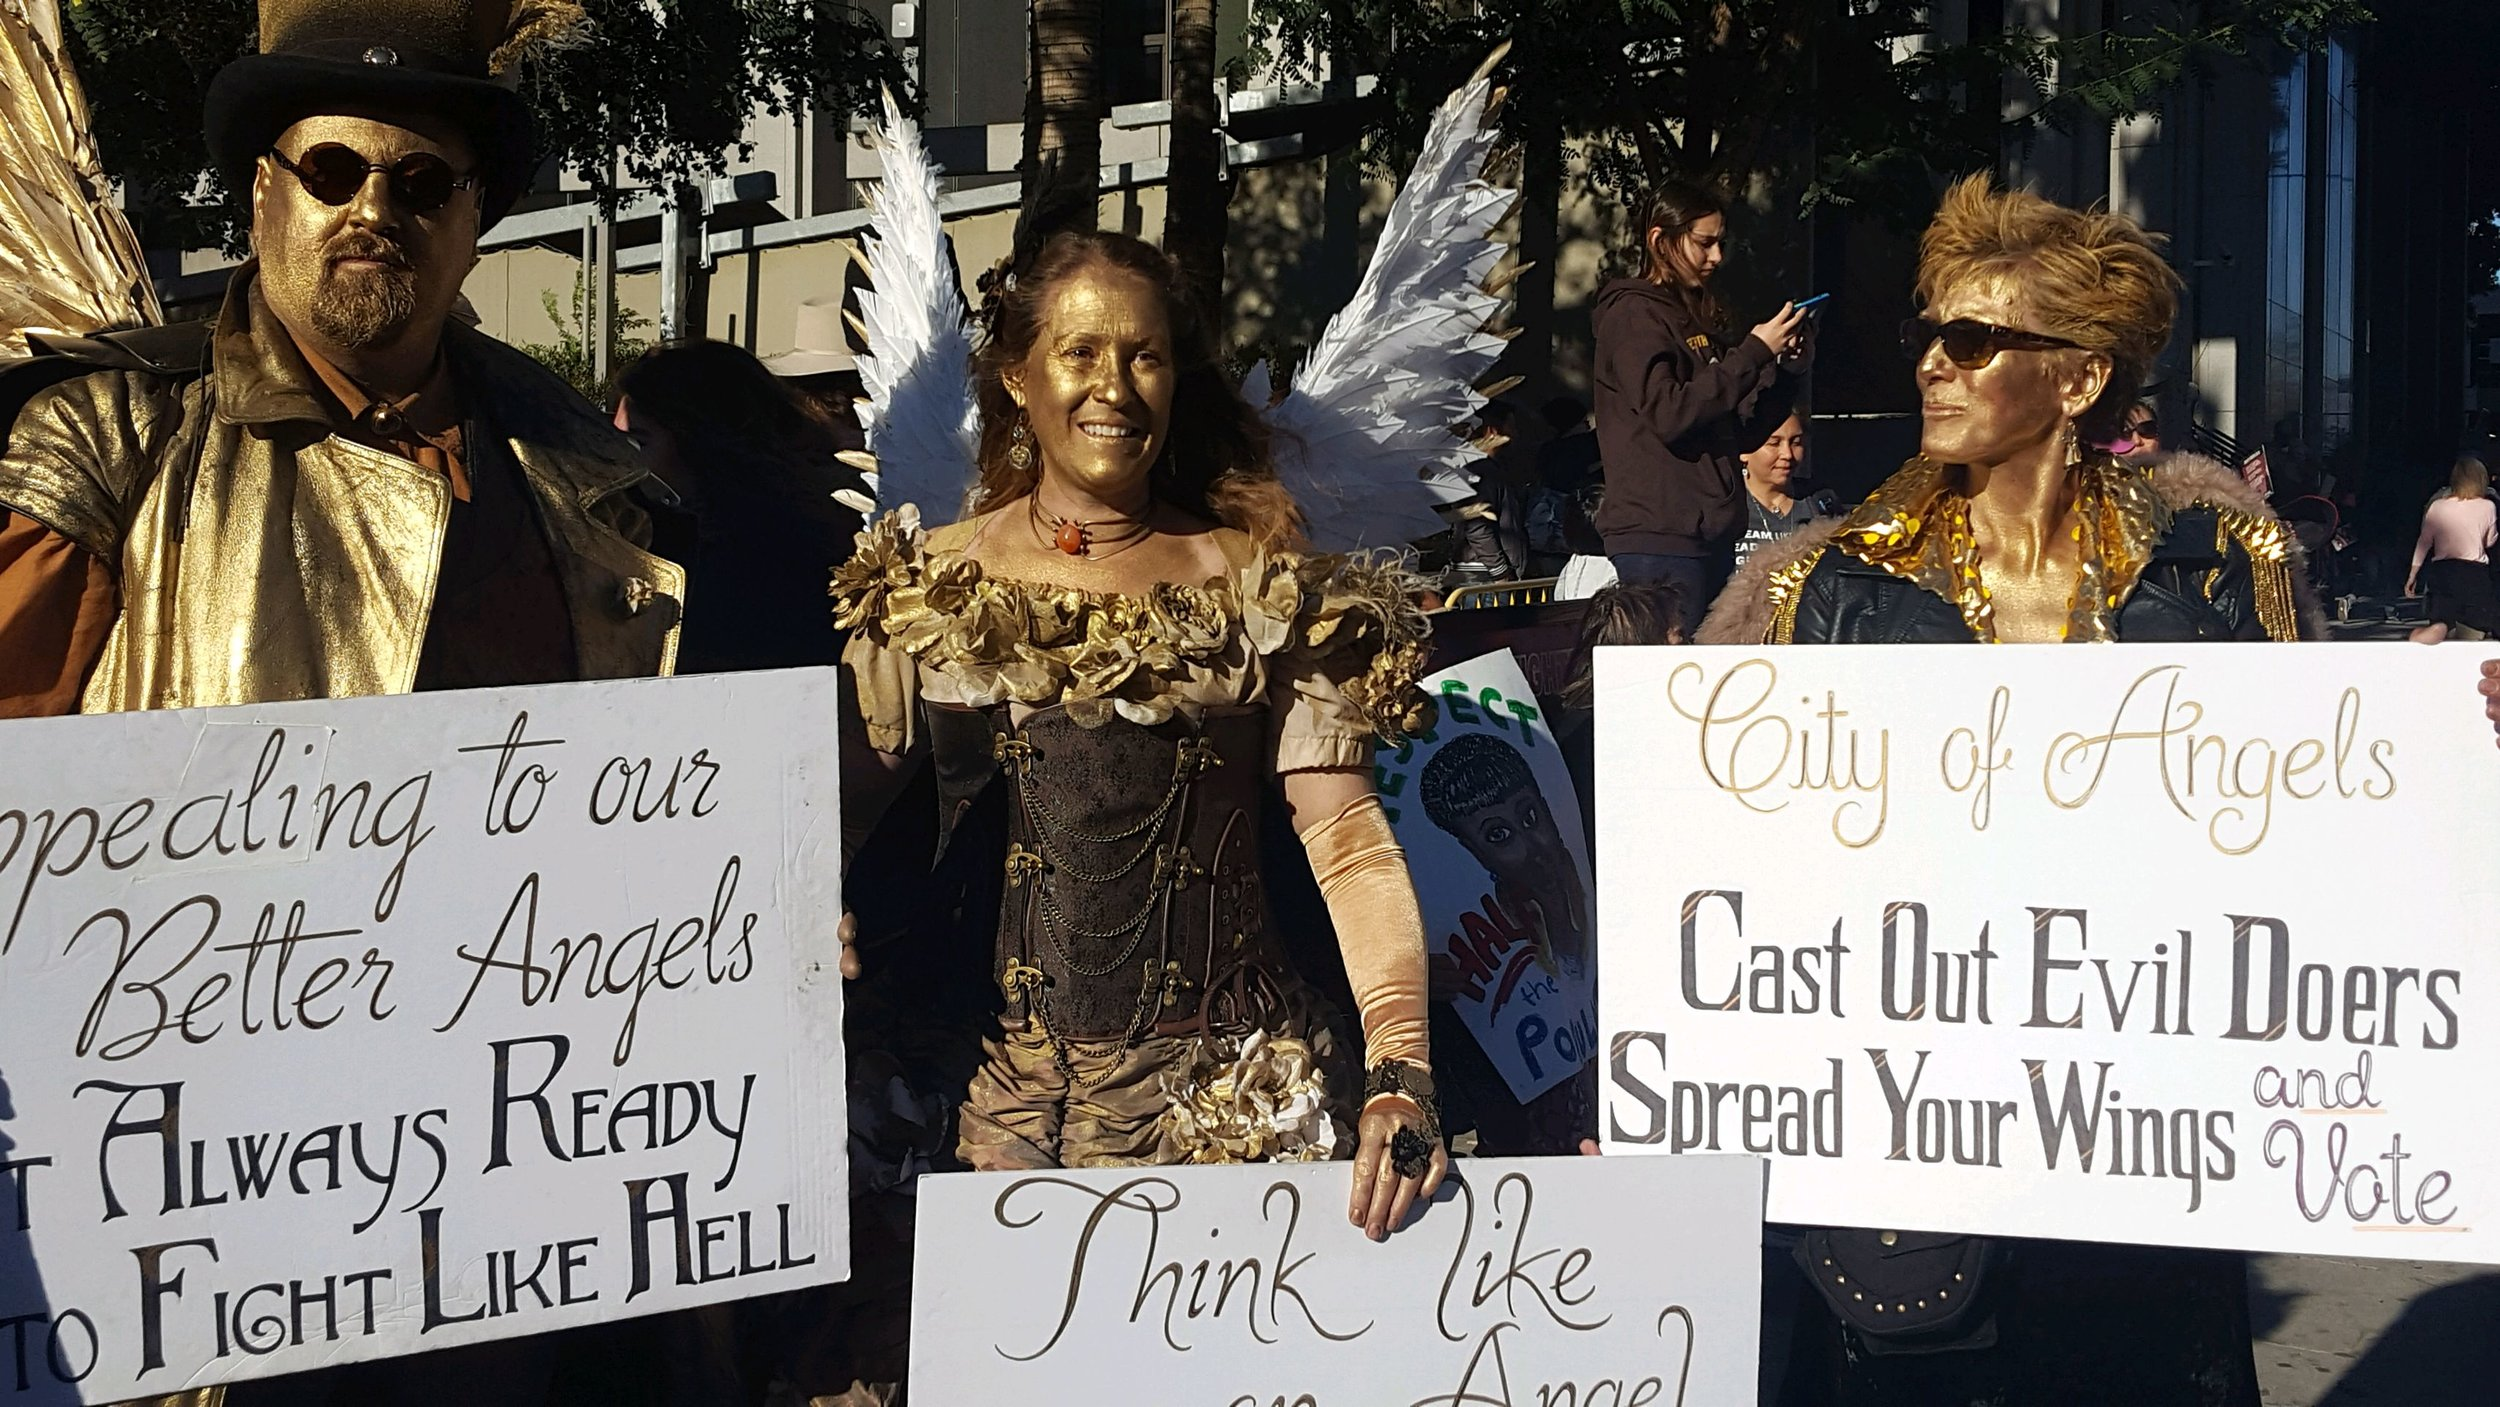 Angels among us at The 2018 Women's March Los Angeles, California.